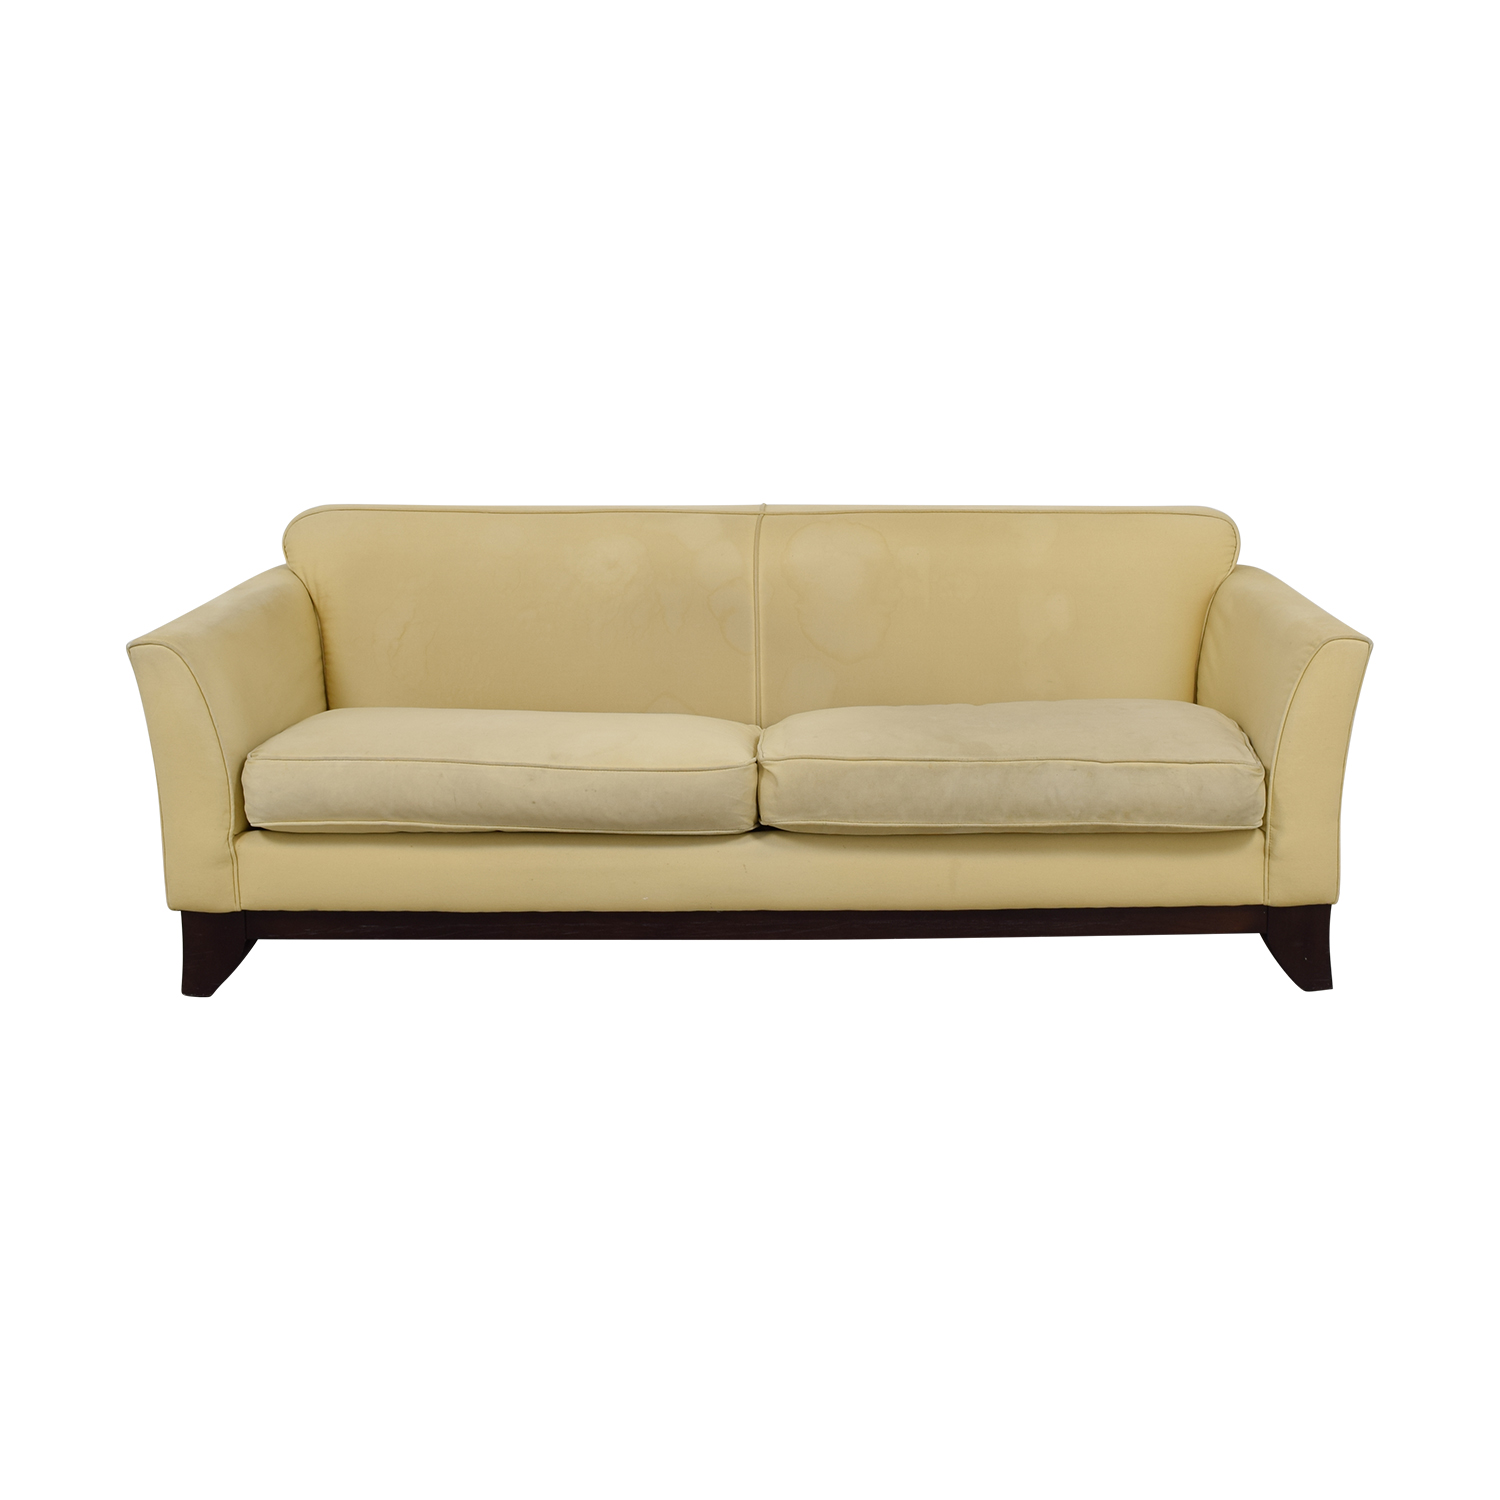 Pottery Barn Pottery Barn Beige Upholstered Two-Cushion Sofa second hand